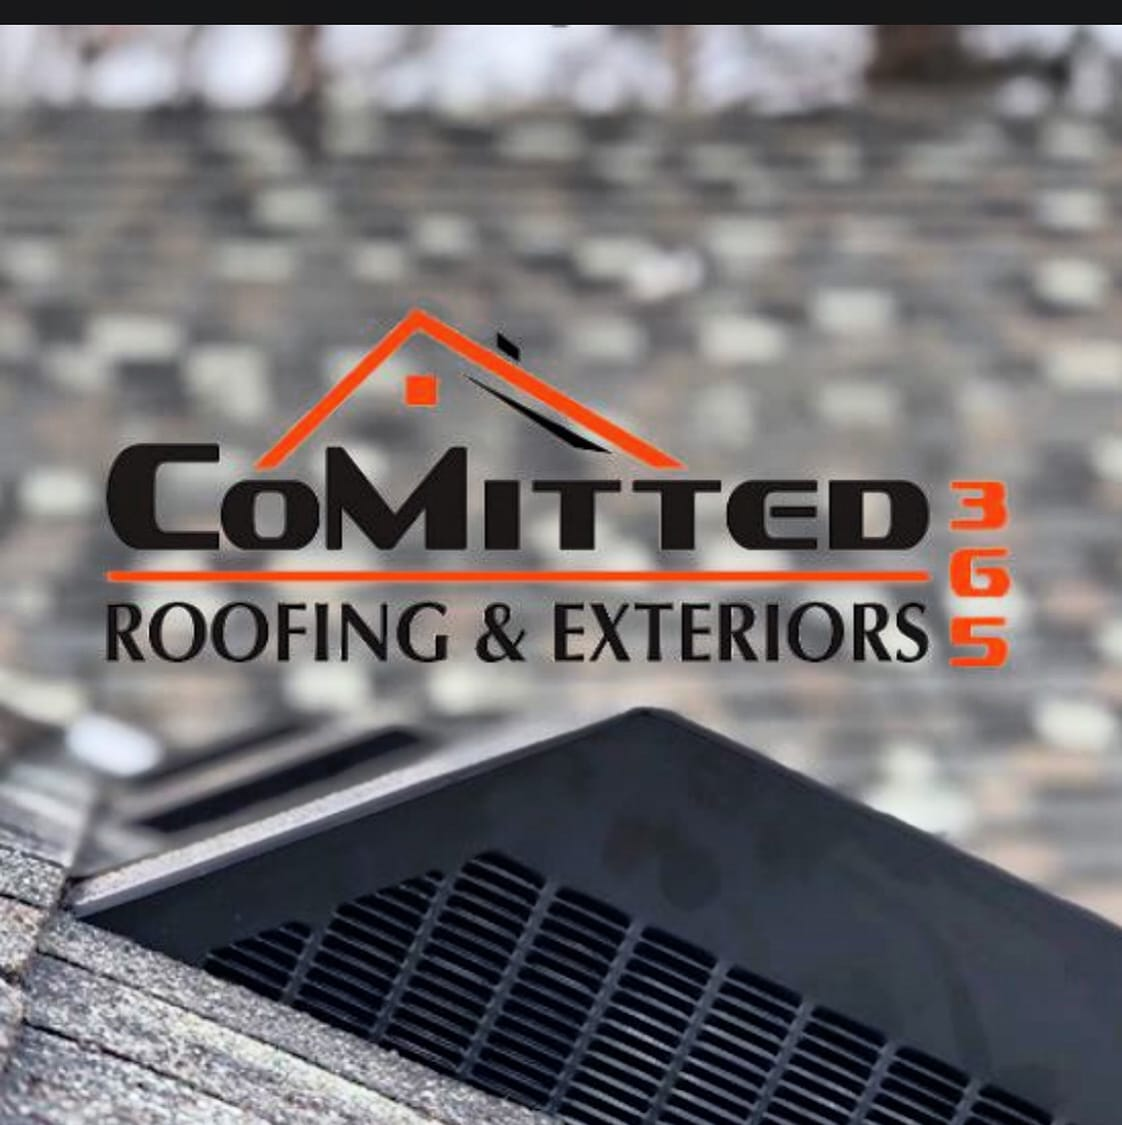 CoMitted 365 Roofing & Exteriors logo